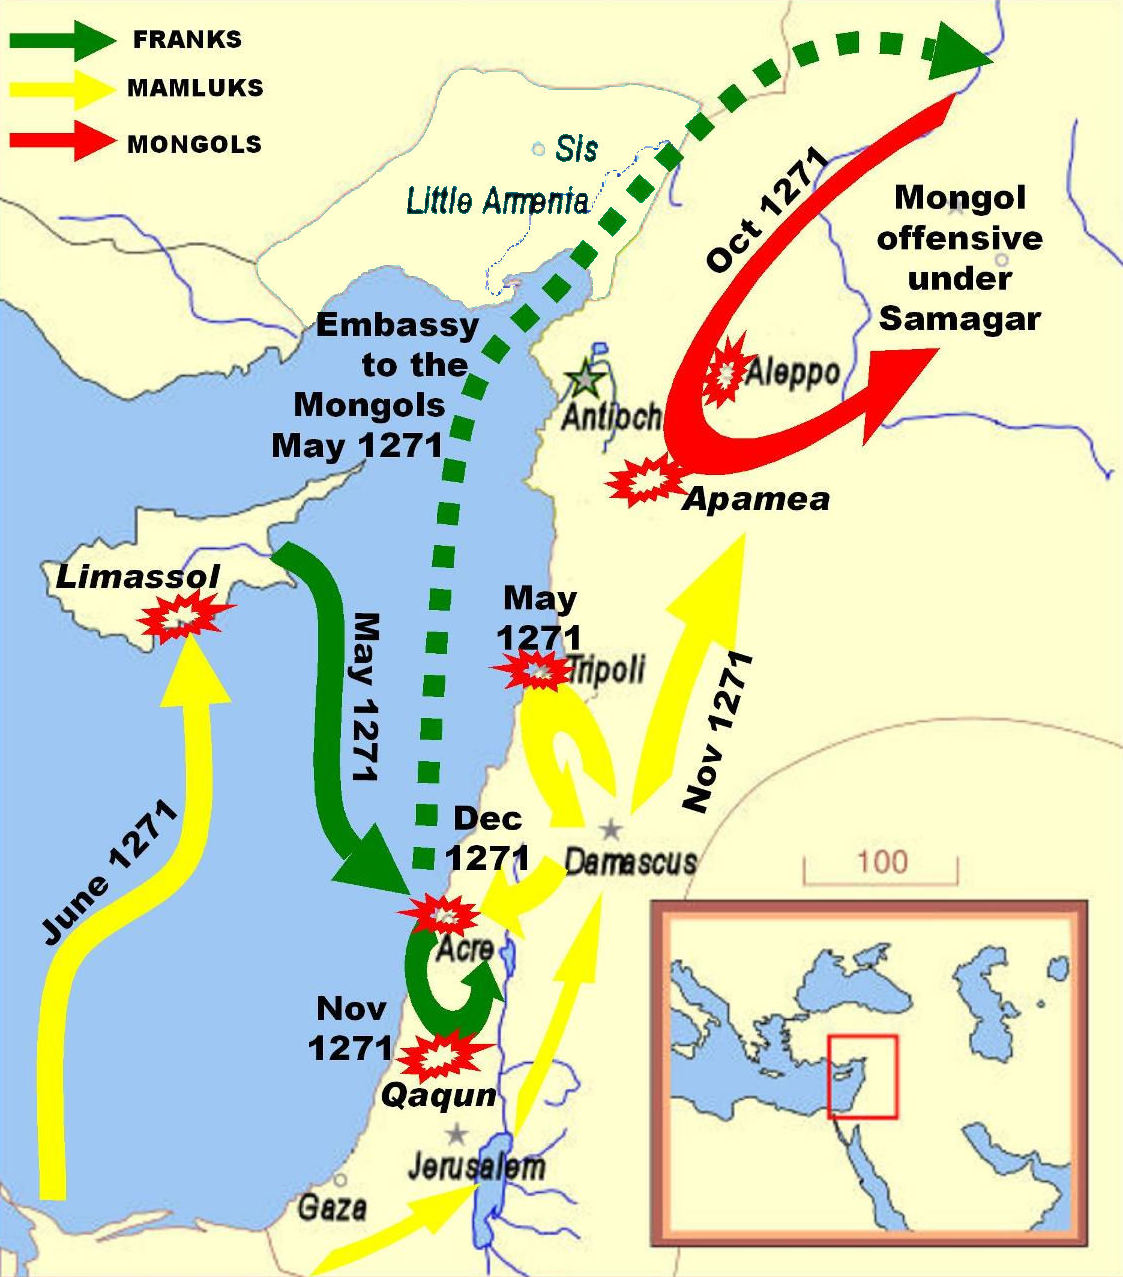 Baibars's Campaigns (http://upload.wikimedia.org/wikipedia/commons/2/25/EdwardICrusadeMap.jpg)